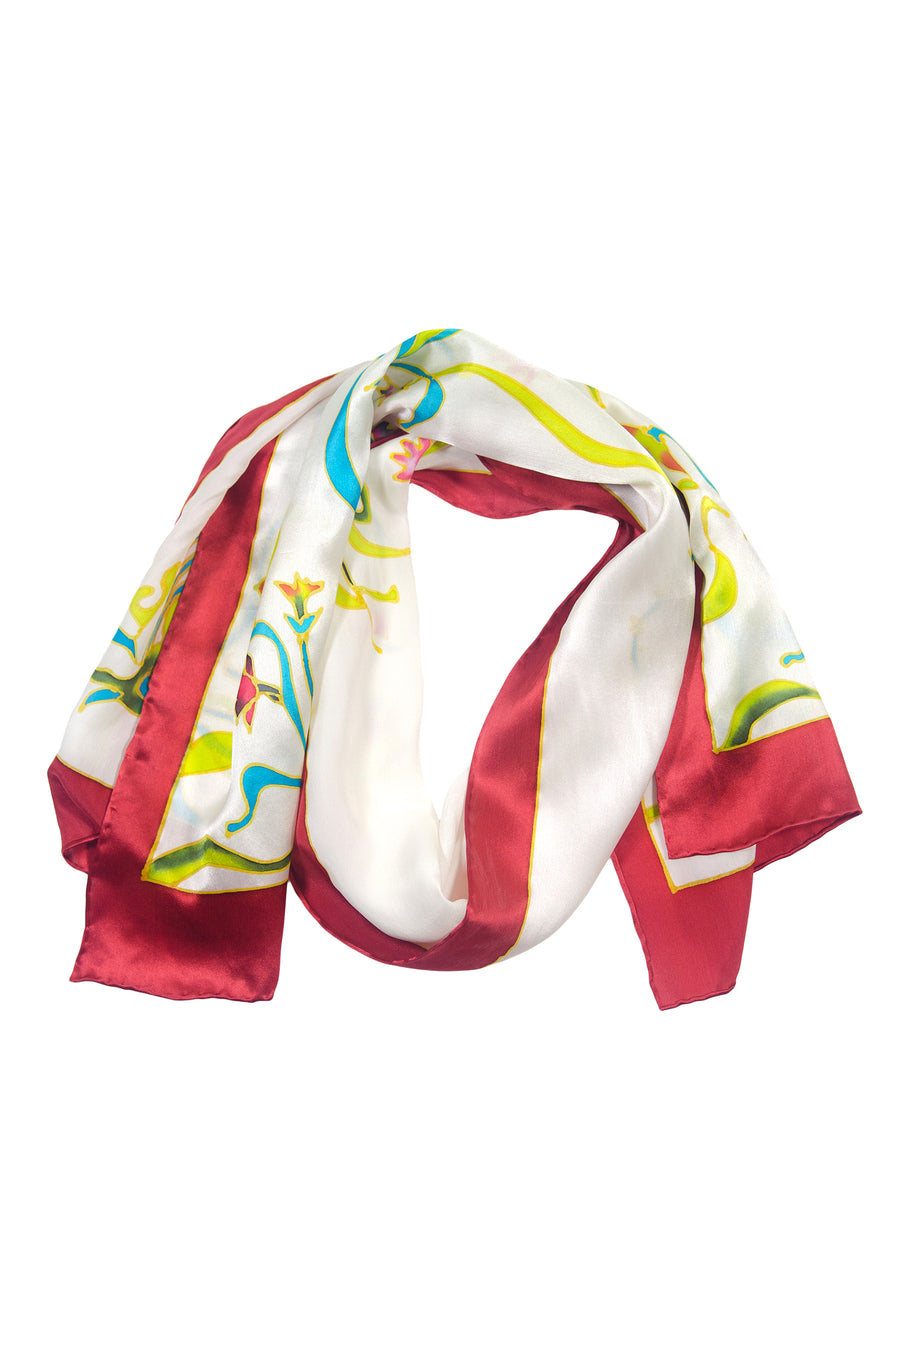 Colorful Vine - Women's Silk Hand Painted Rectangular Scarf - TexereSilk